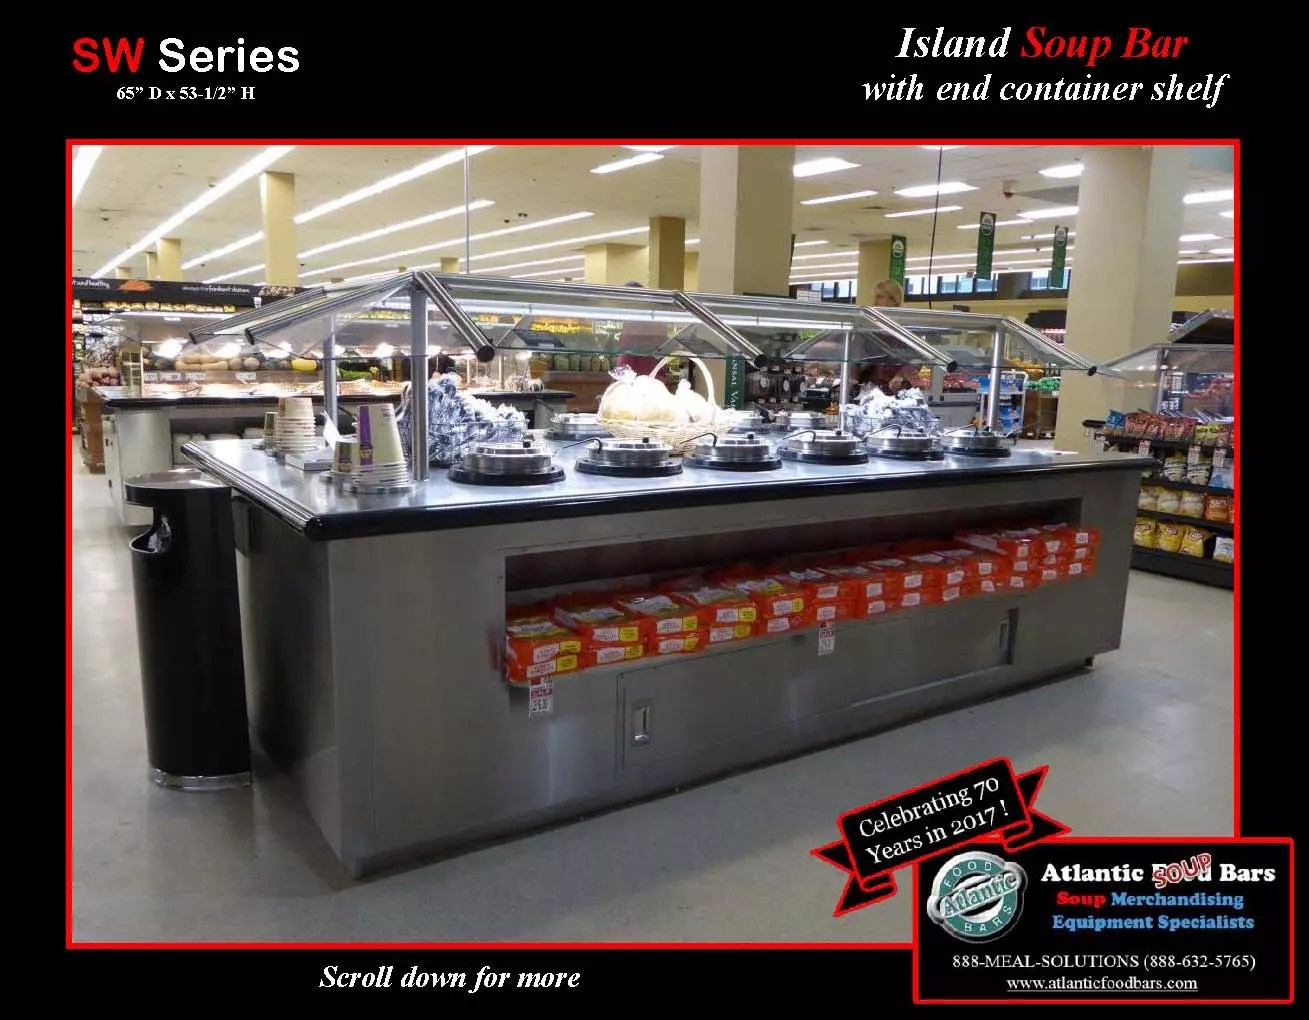 Atlantic Food Bars - Island Soup Bar with End Container Shelf - SW_Page_1